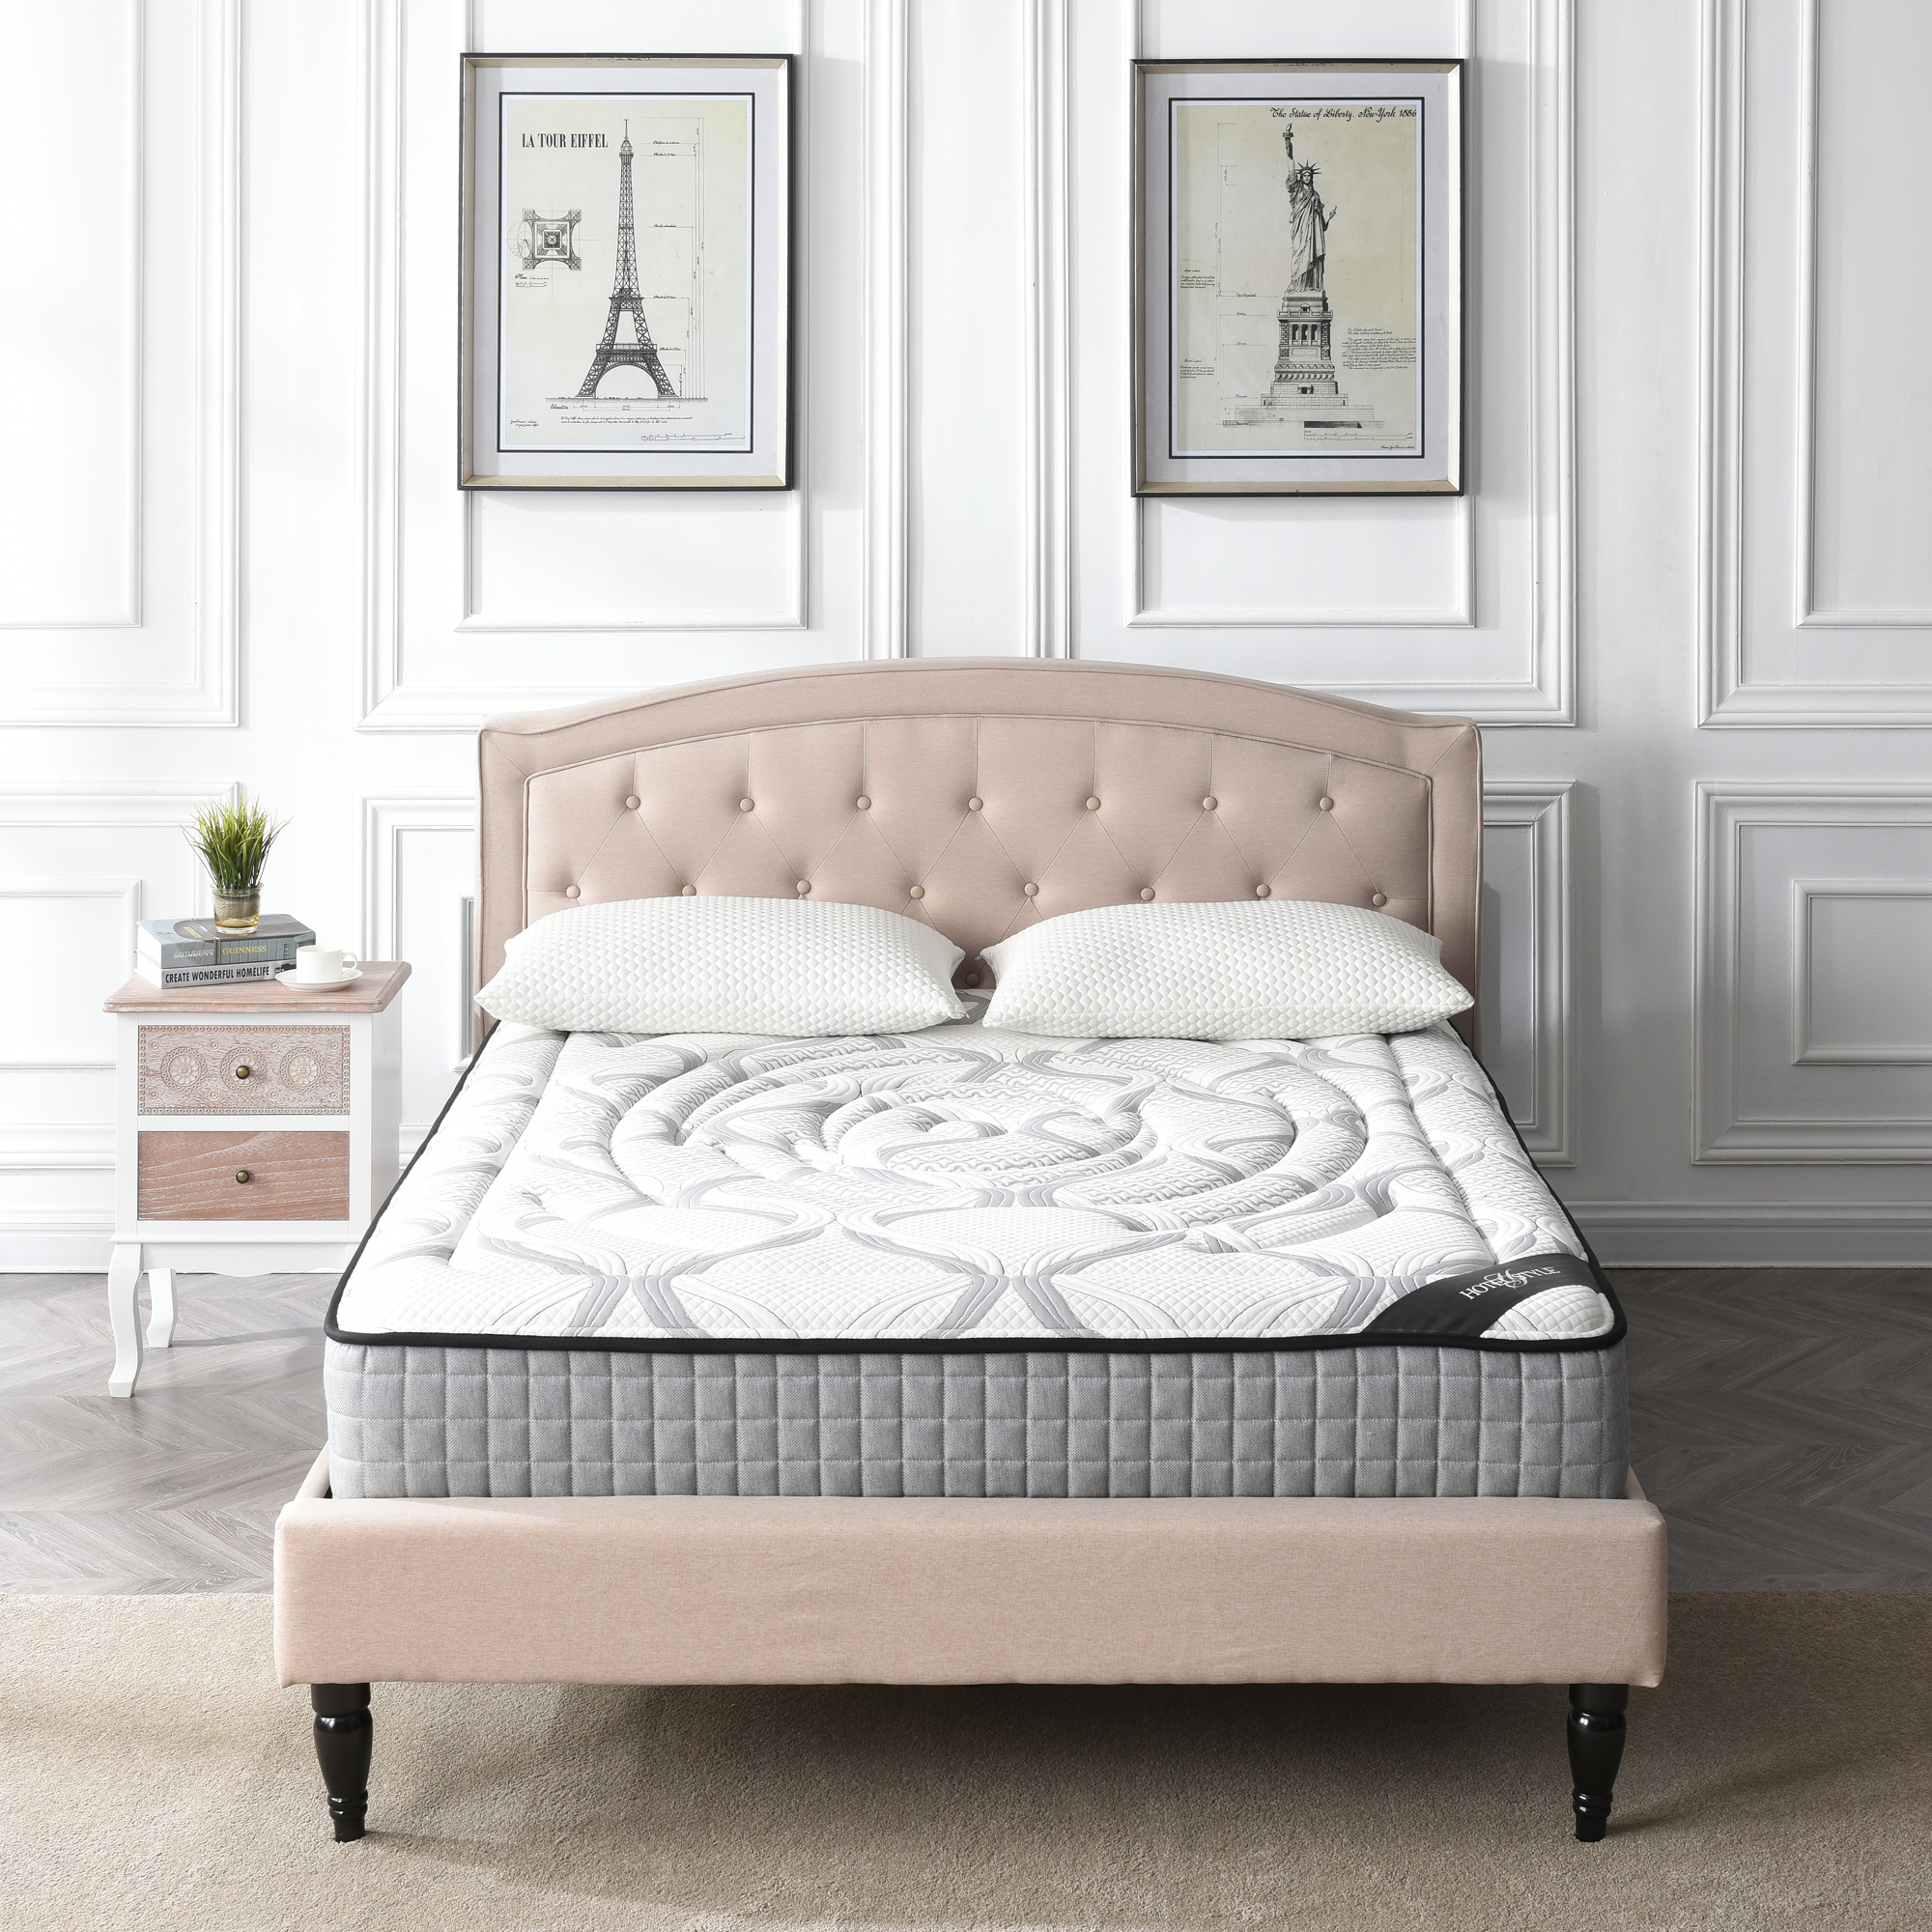 Hotel Style 10.5-Inch Medium Firm Memory Foam and Individually Encased Spring Mattress